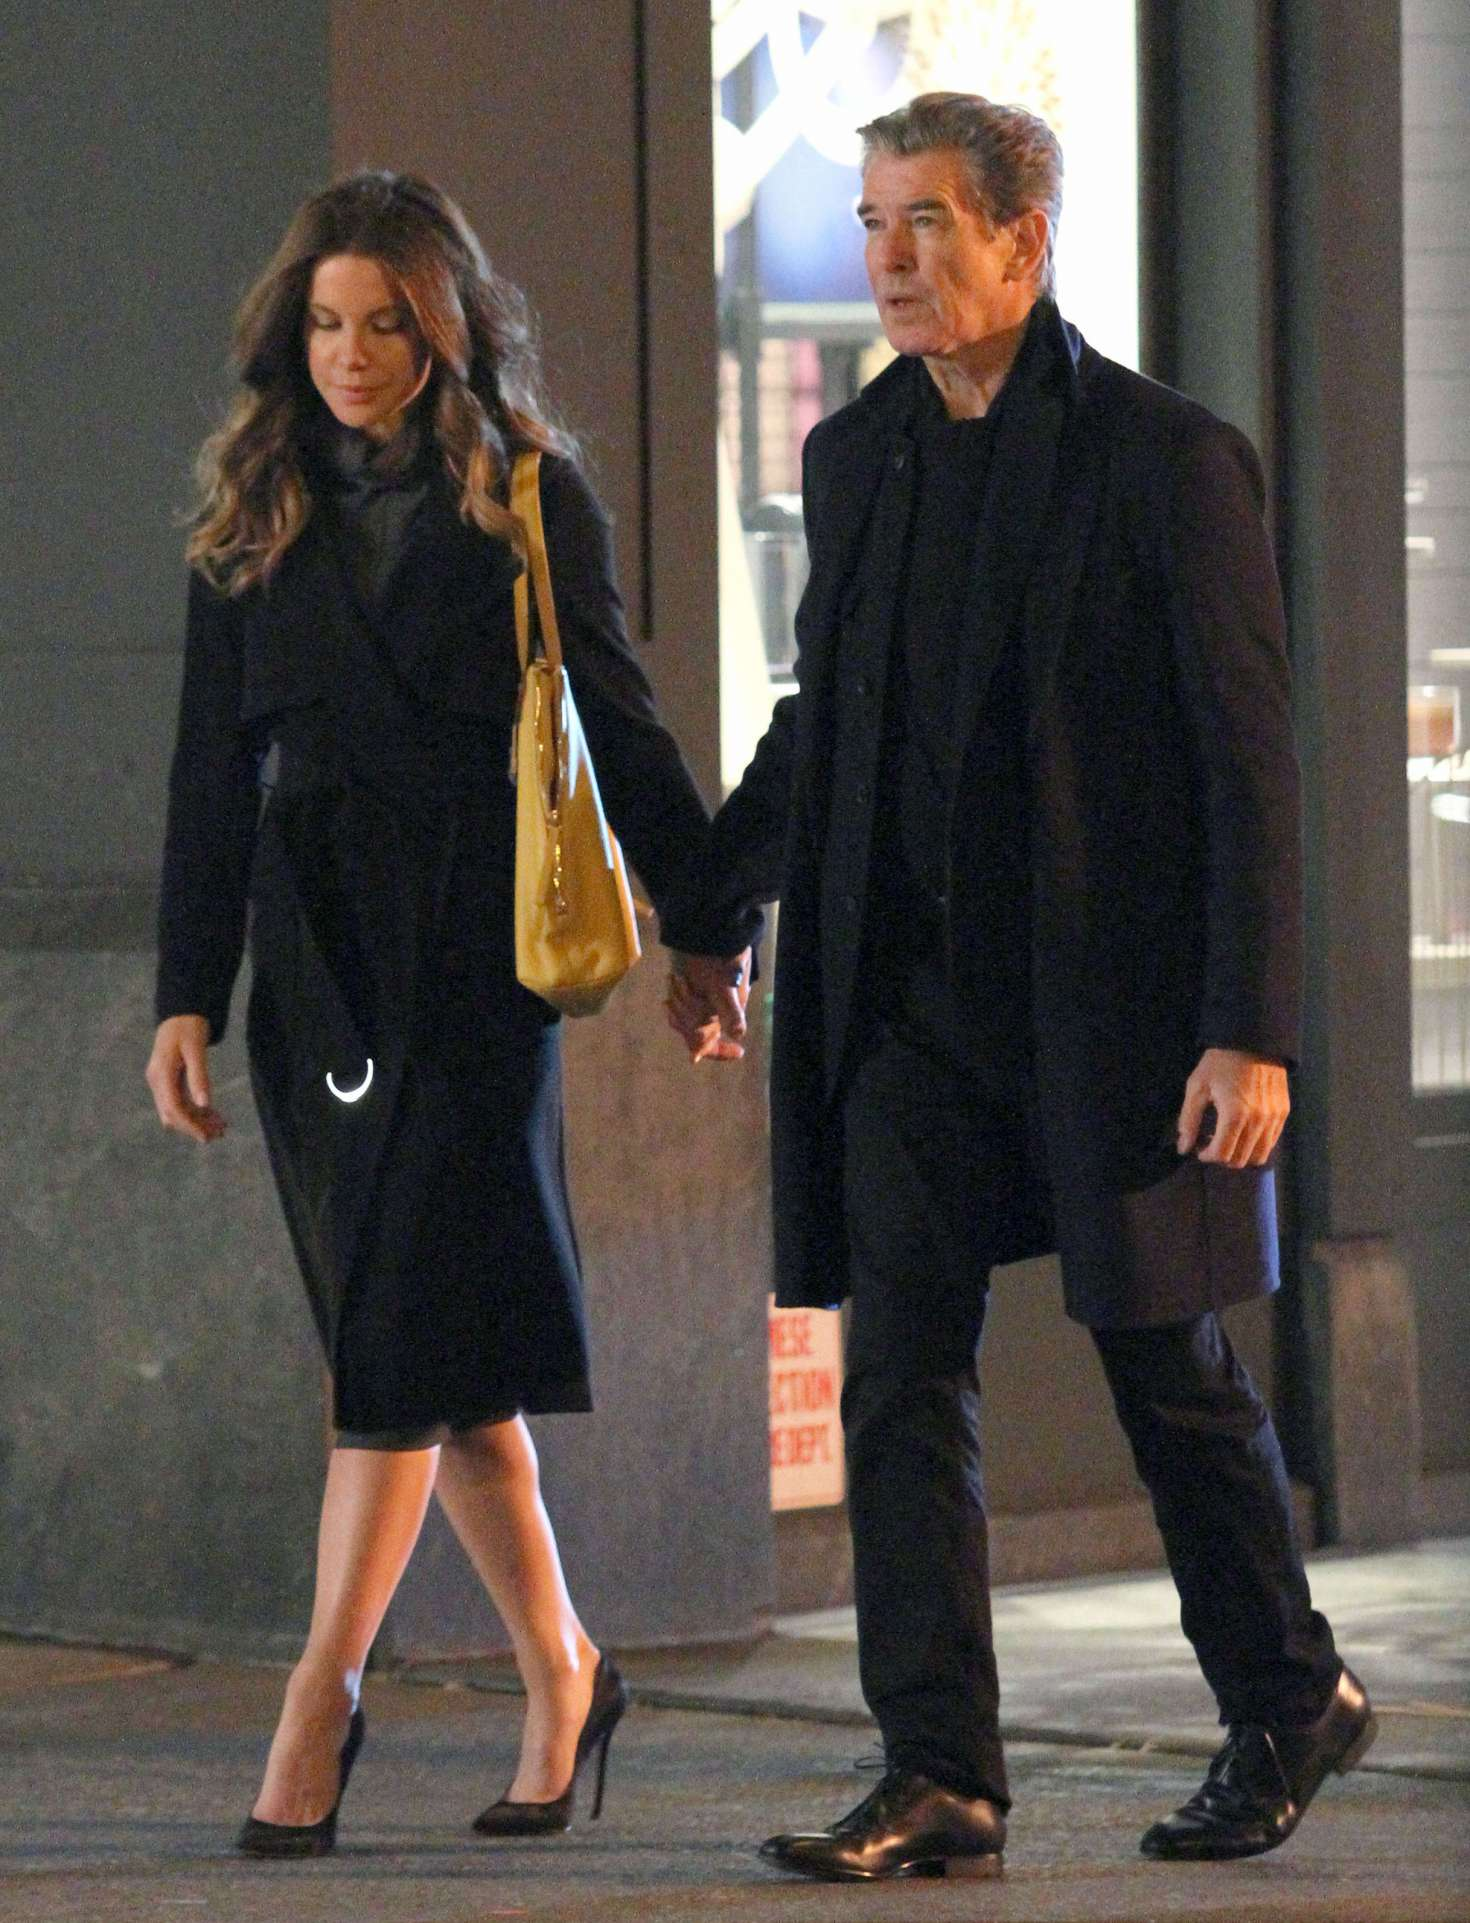 Pierce Brosnan and Kate Beckinsale on 'The Only Living Boy In New York' set in Manhattan